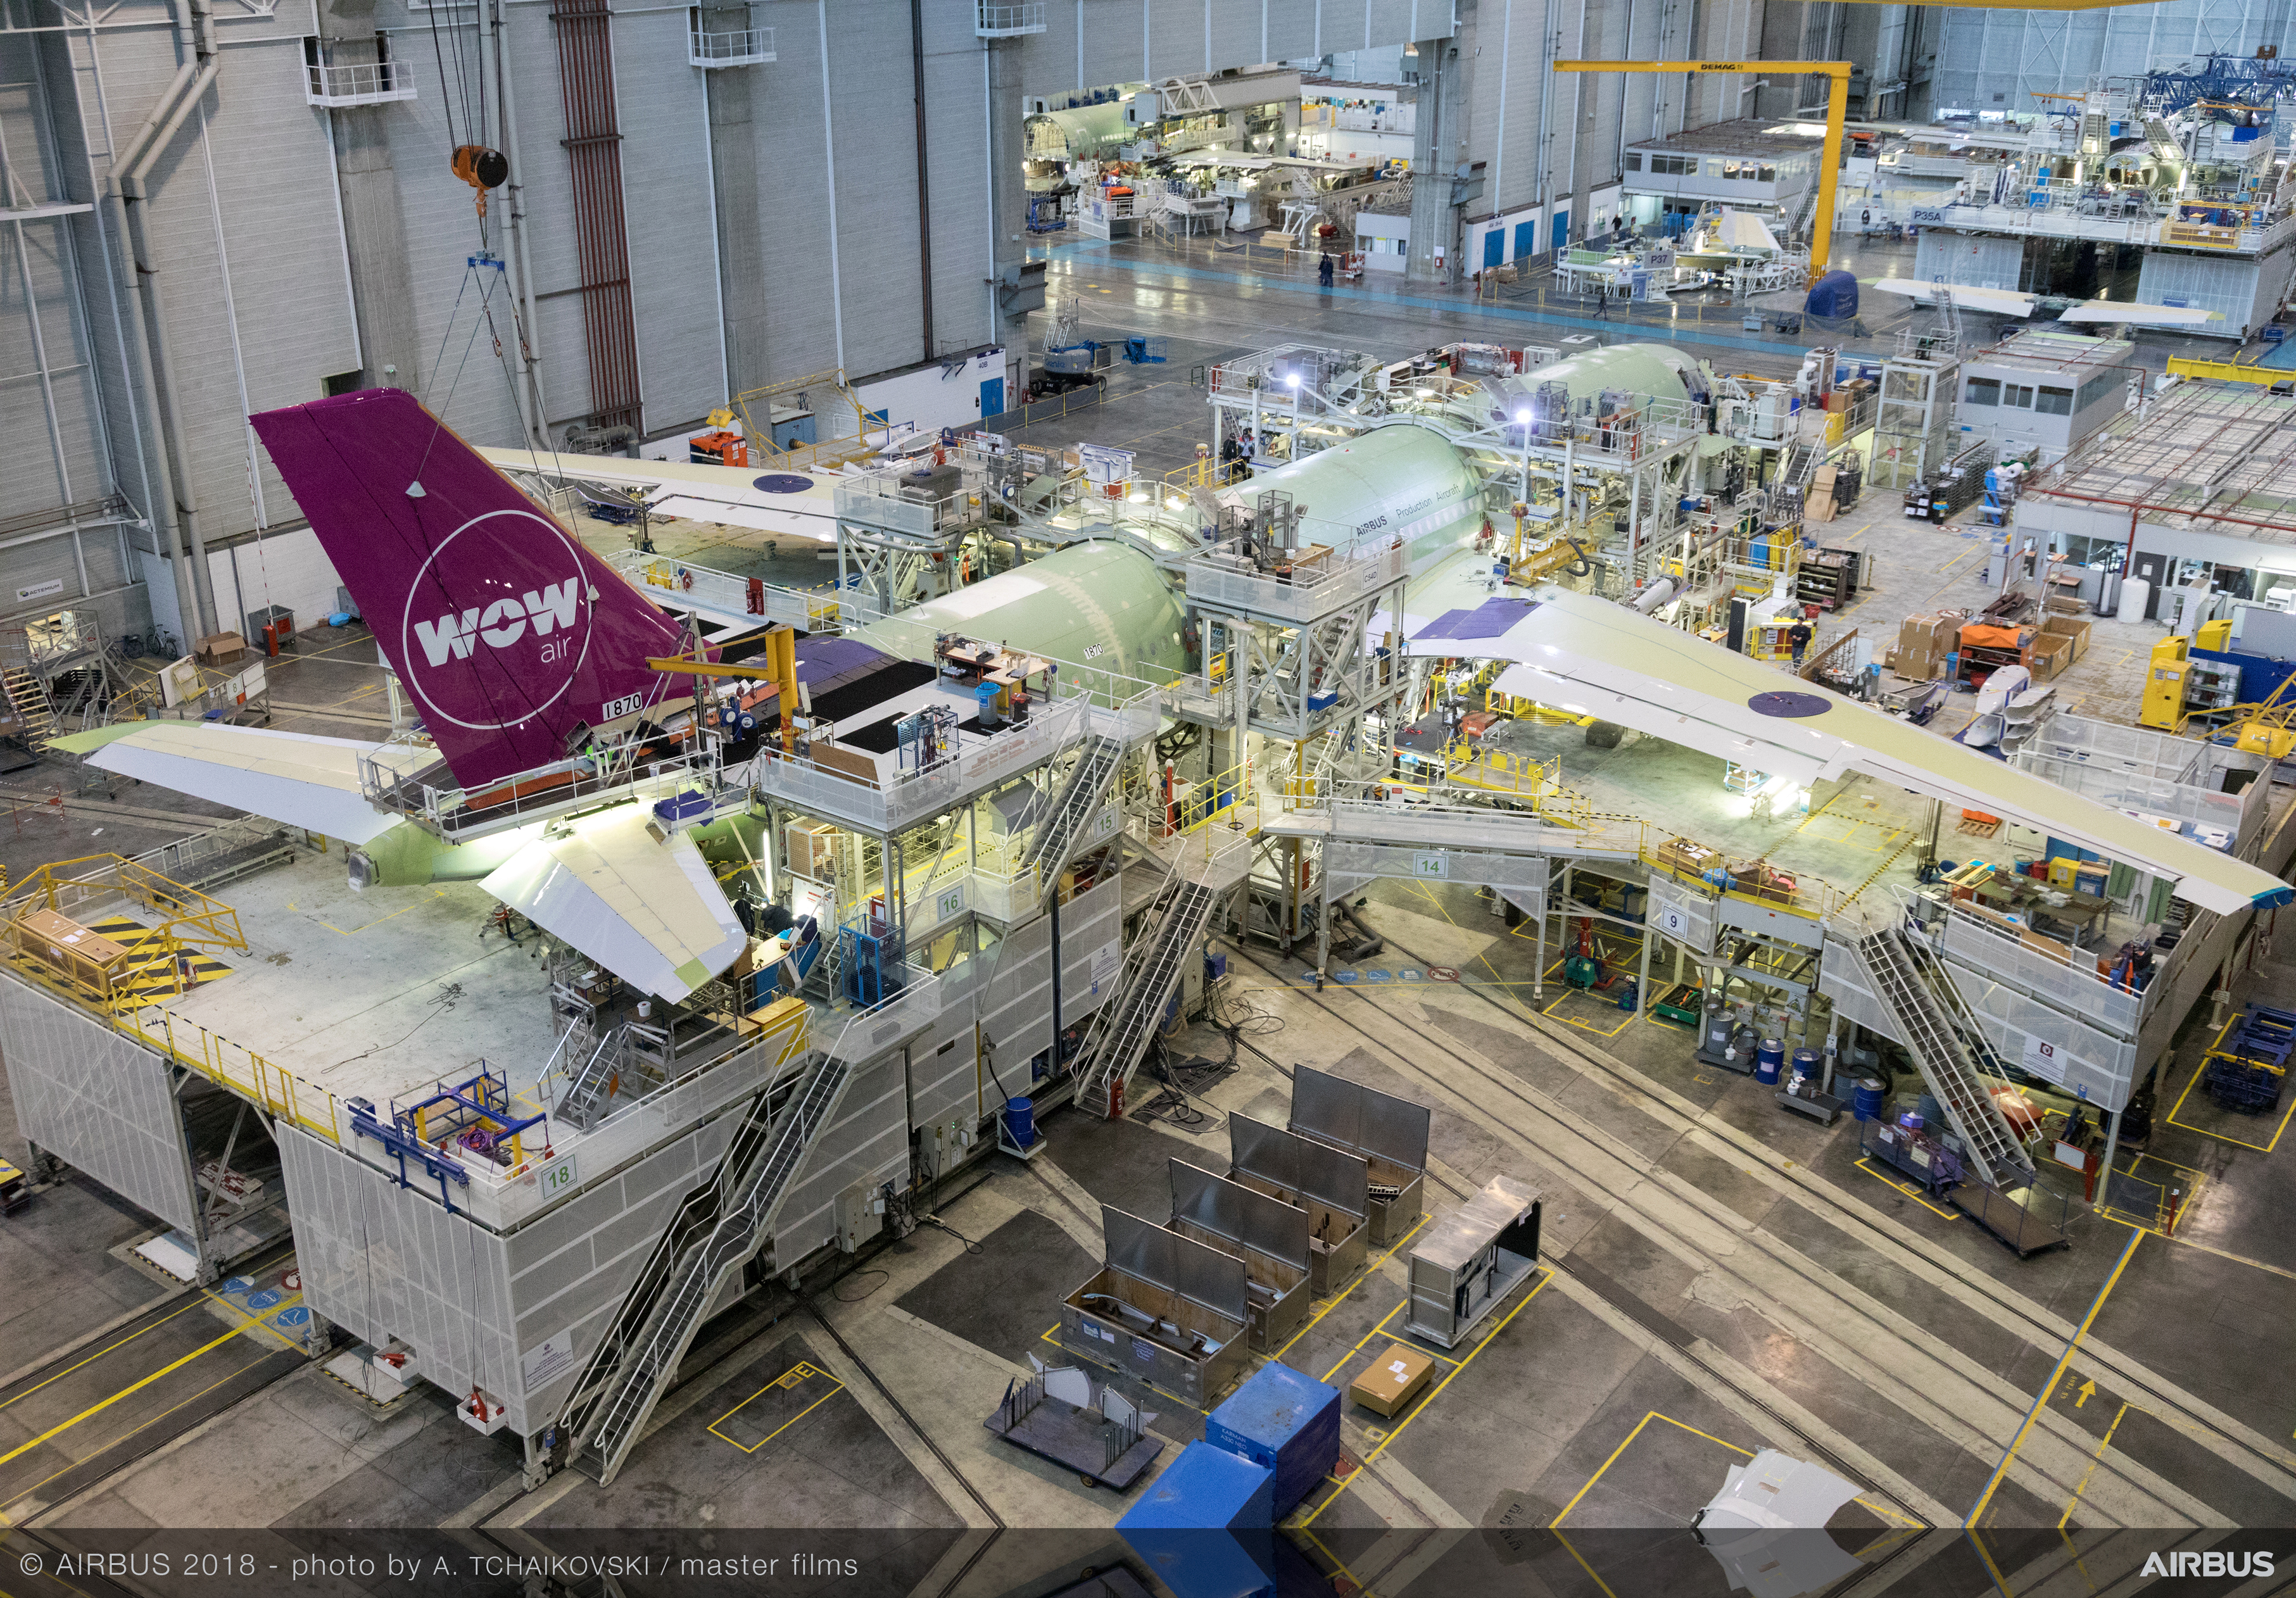 WOW airs nye Airbus A330neo-fly er i sidste fase af produktionen. Foto: WOW air